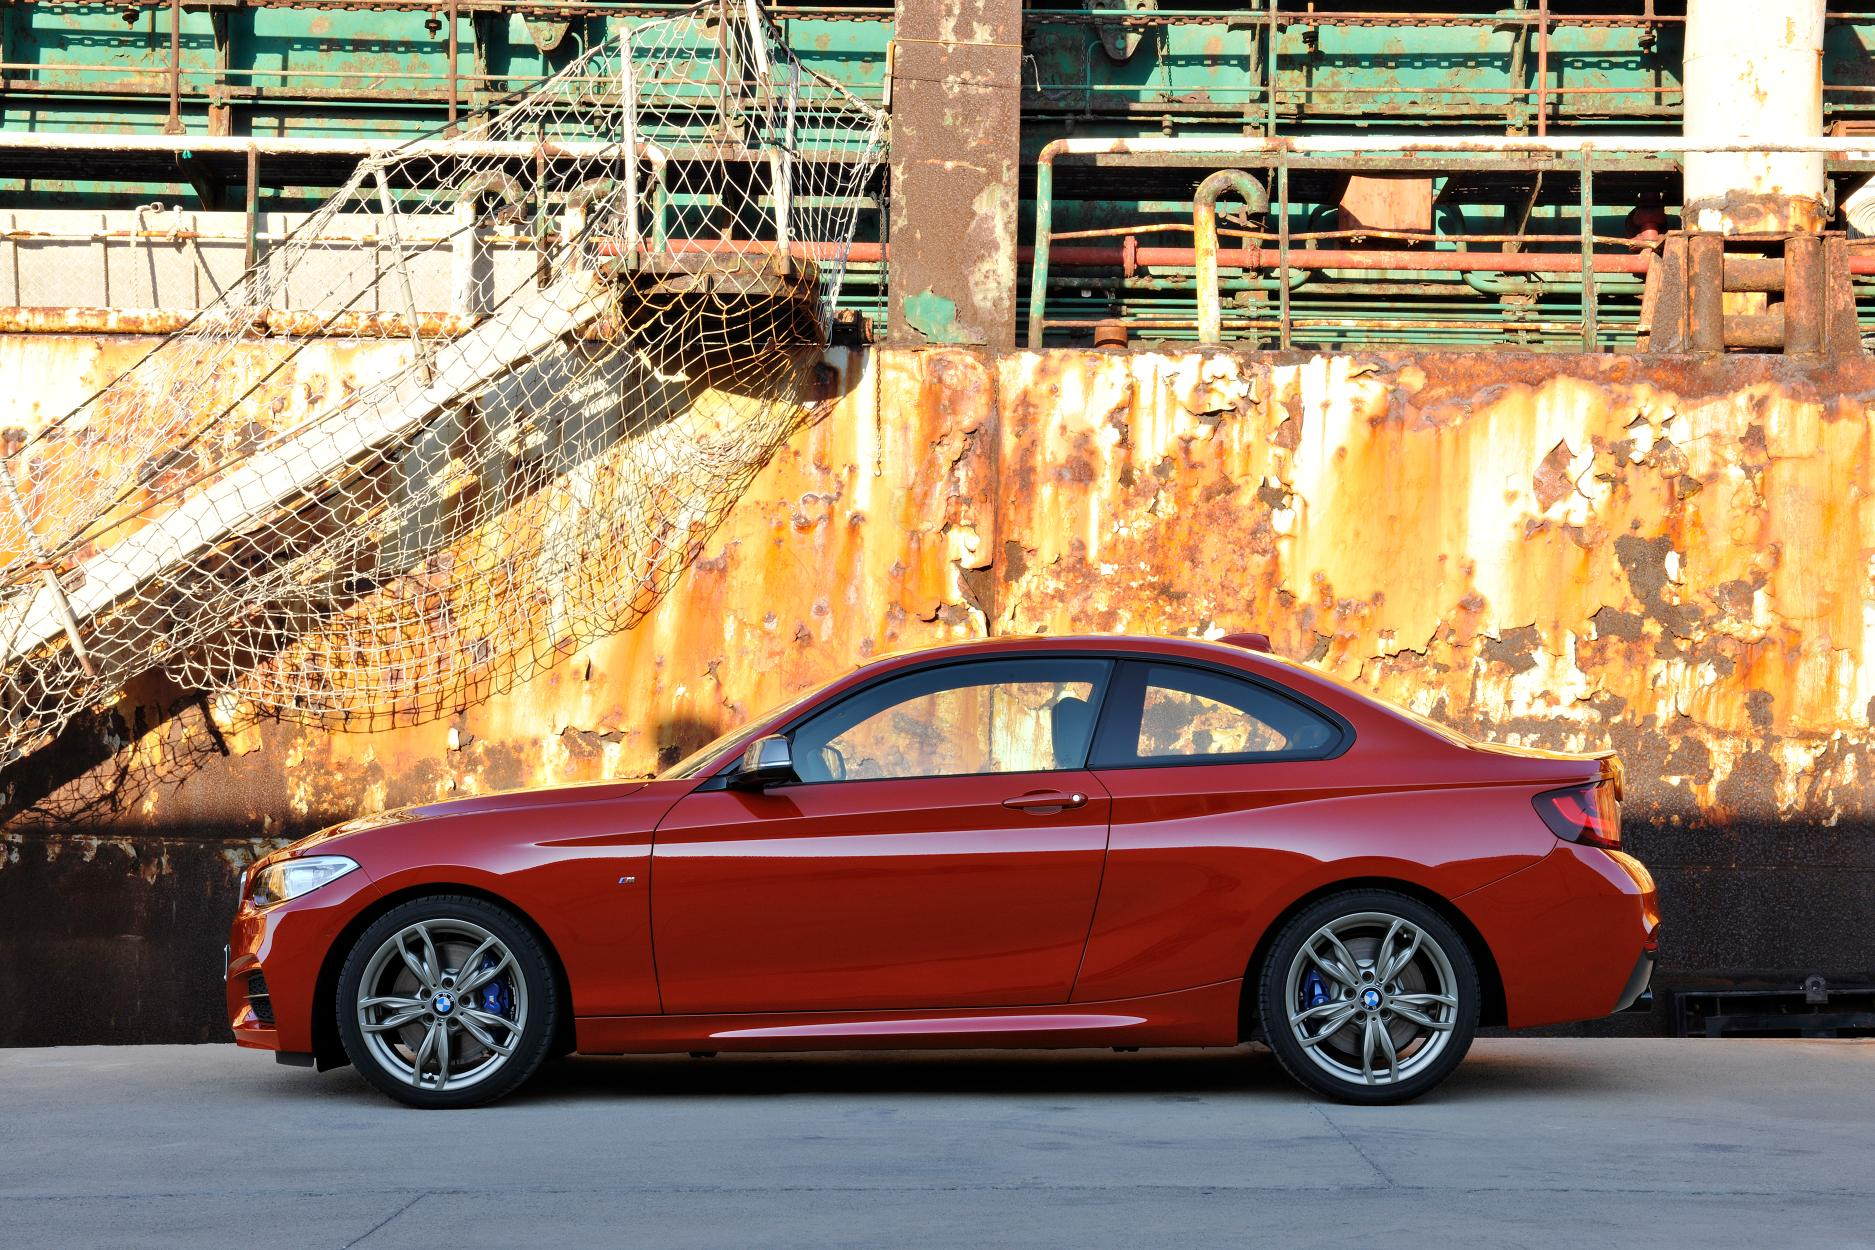 BMW 2 series 228i 2013 photo - 1